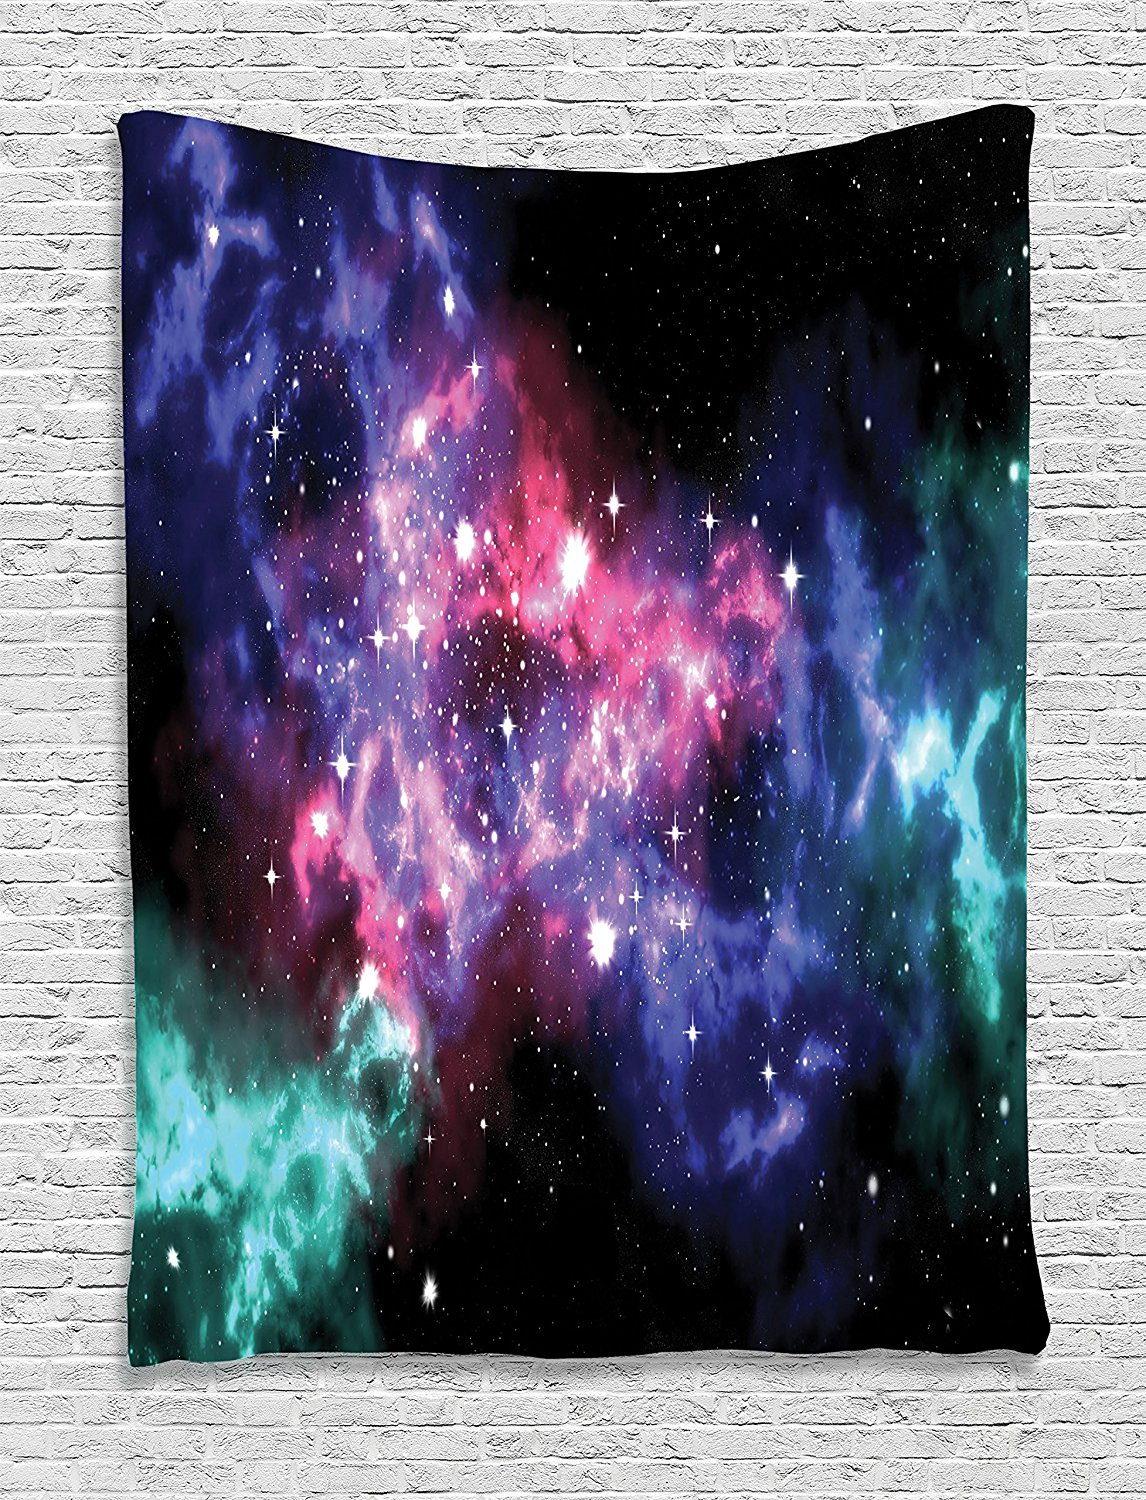 Tapestry, Stars And Dusty Gas Cloud In Planetary Magical Cosmos Universe Print Decor, Bedroom Living Room Dorm Decor